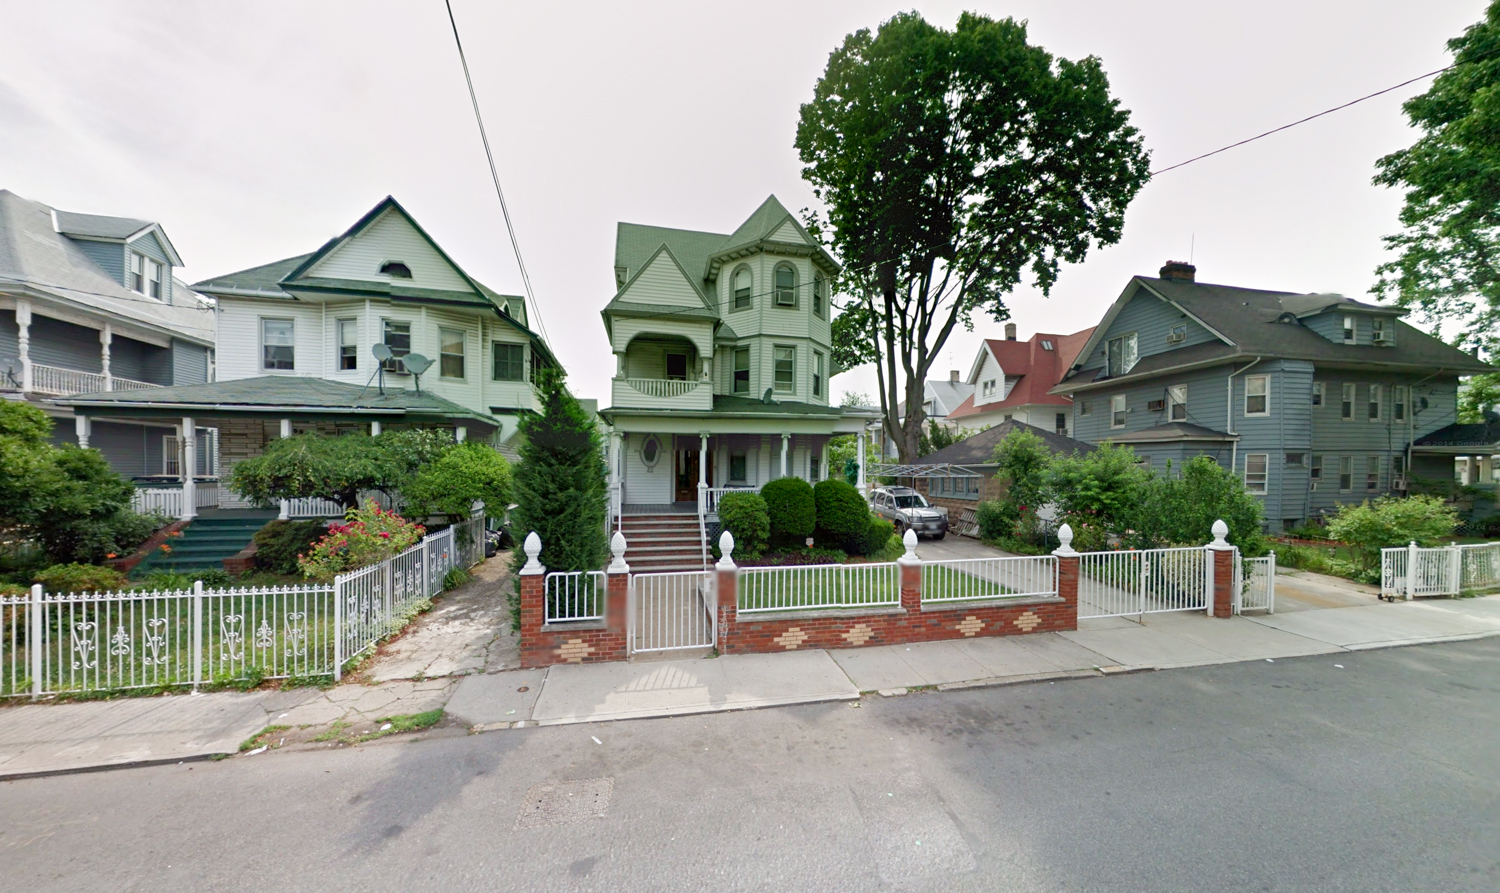 1565 New York Avenue, via Google Maps